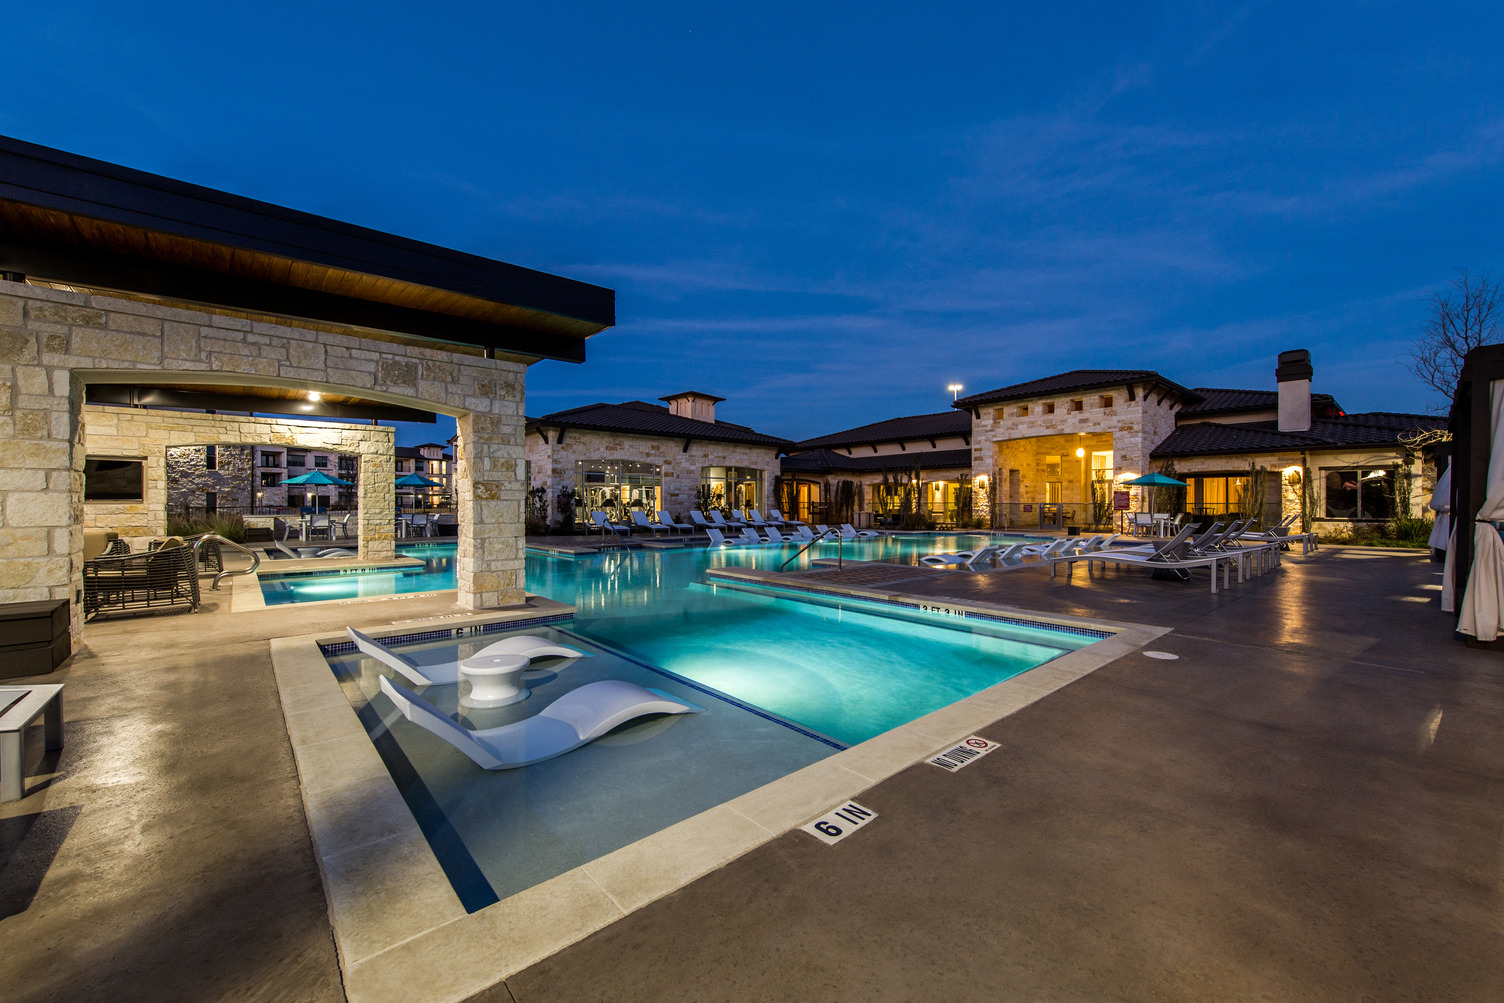 Evening view of resort-style swimming pool courtyard with lounge seating and landscaping